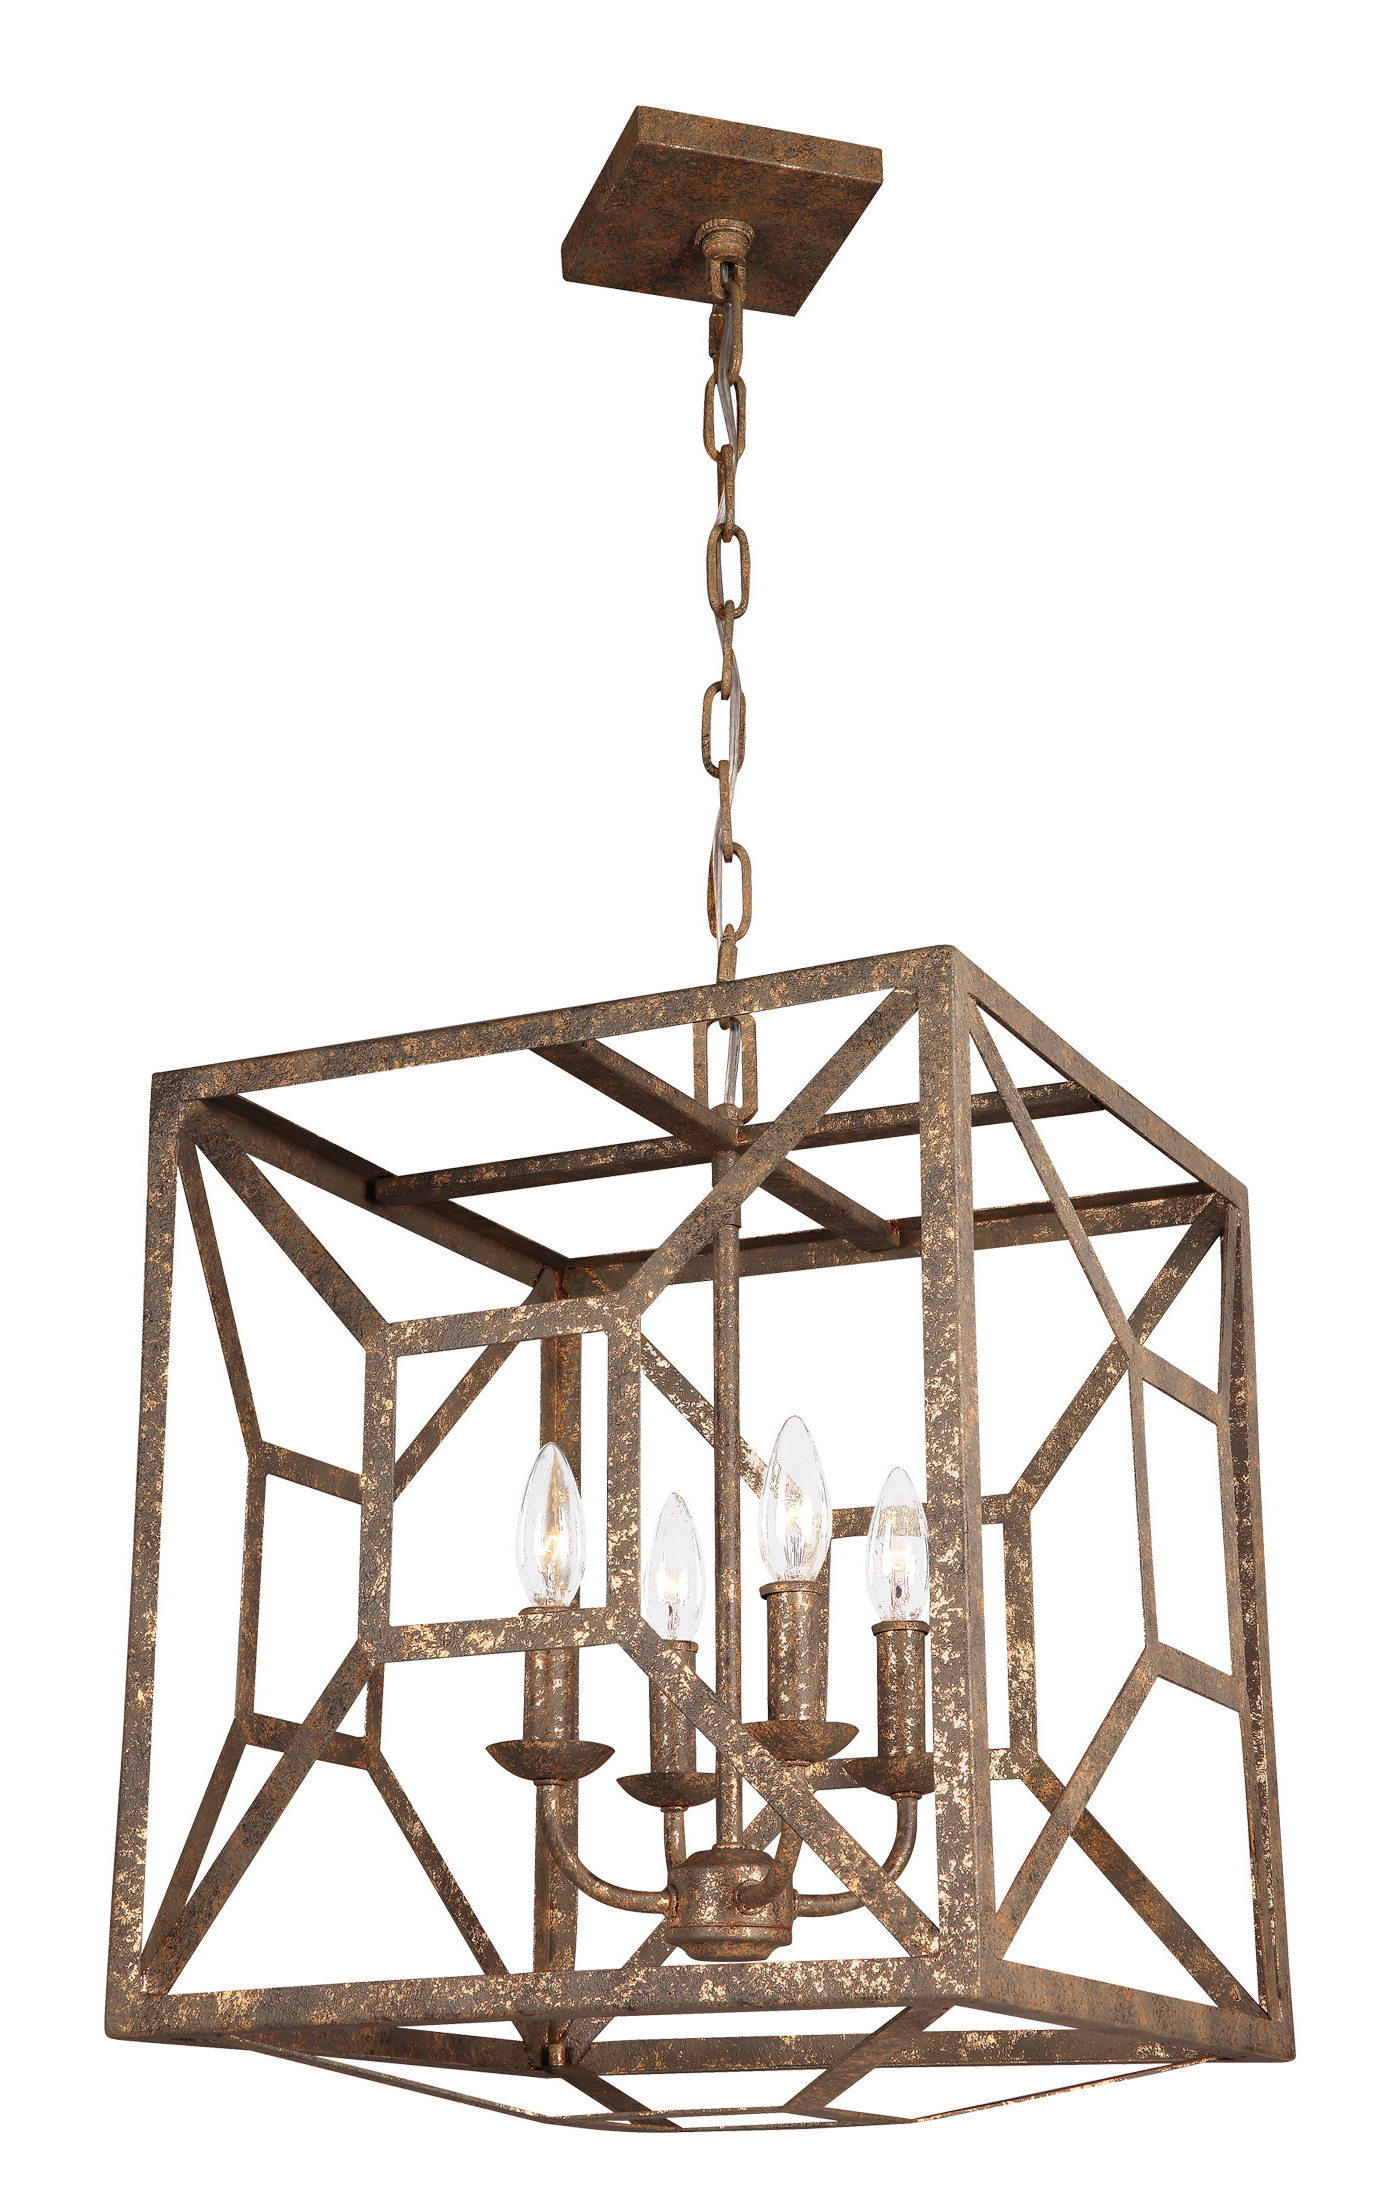 Gracie Oaks Jayanth 4 Light Square/rectangle Chandelier Within Most Popular Delon 4 Light Square Chandeliers (View 7 of 25)